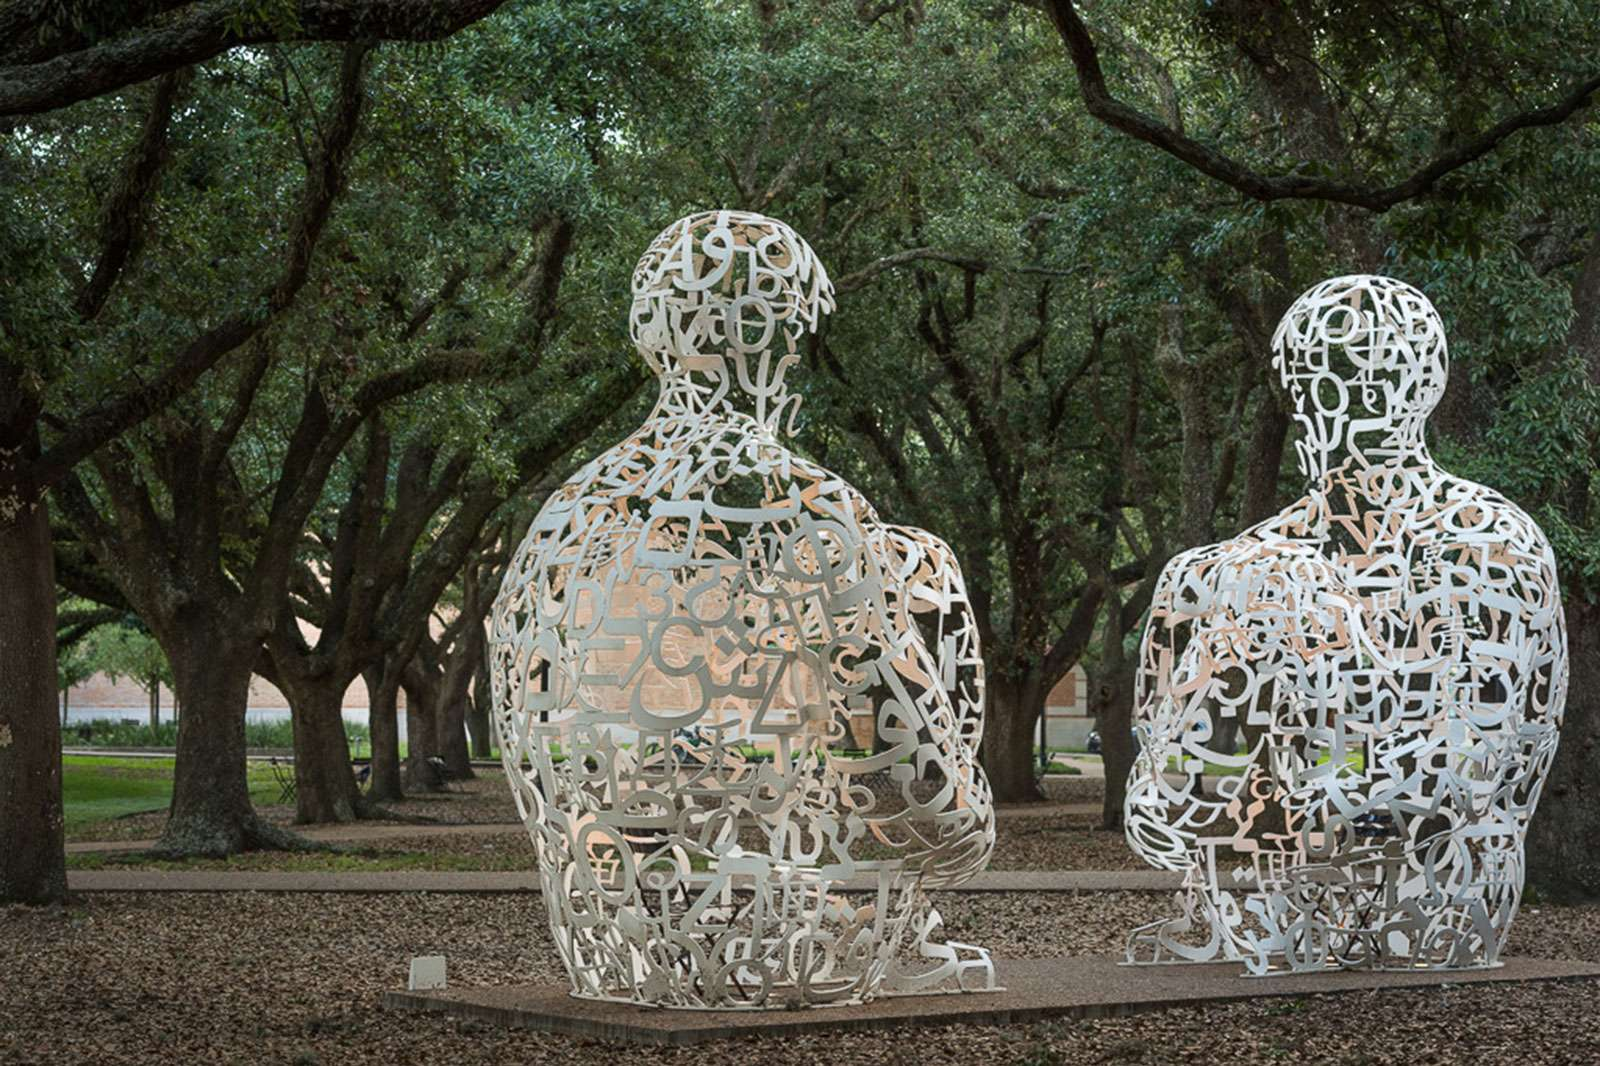 Jaume Plensa, Mirror, 2011. Photo: Nash Baker